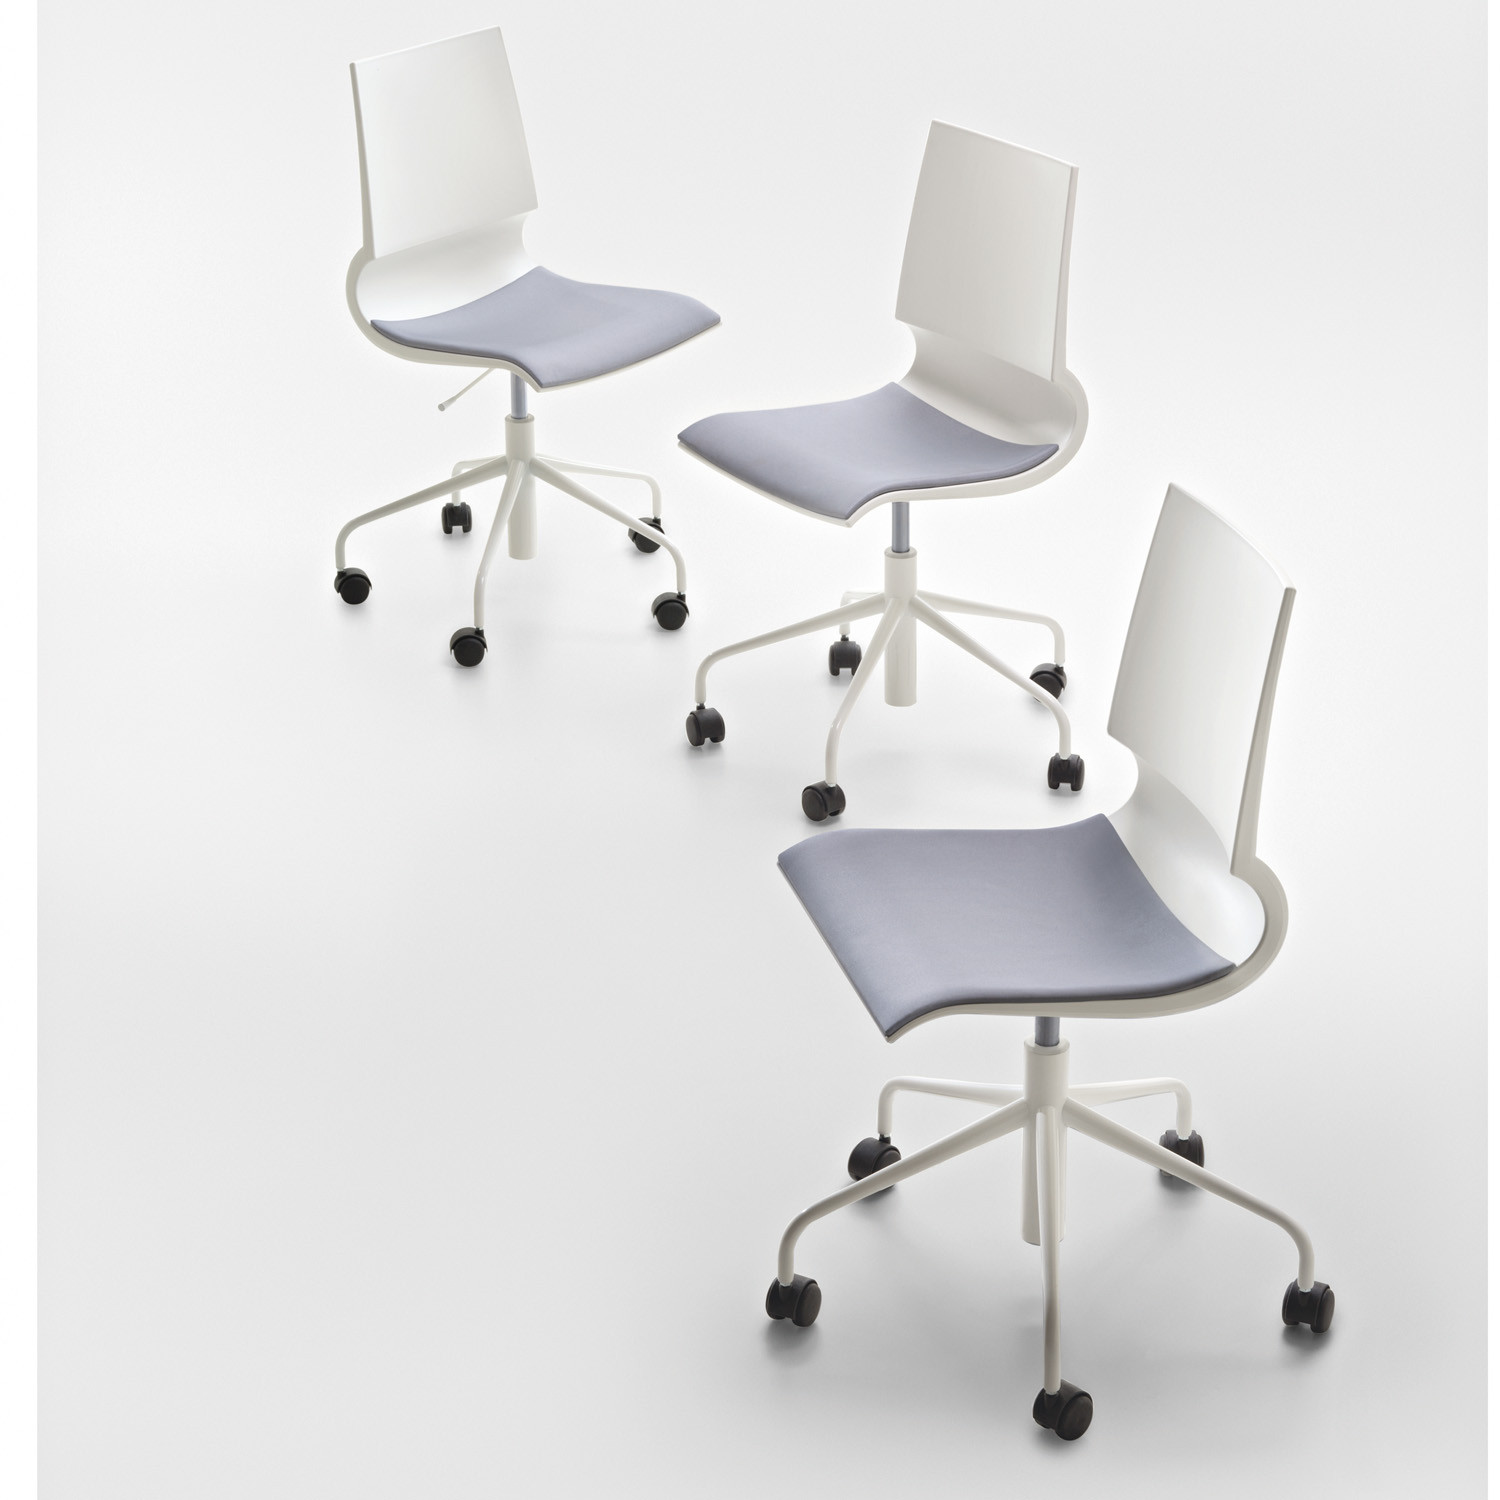 Ricciolina Castor Mounted Chairs